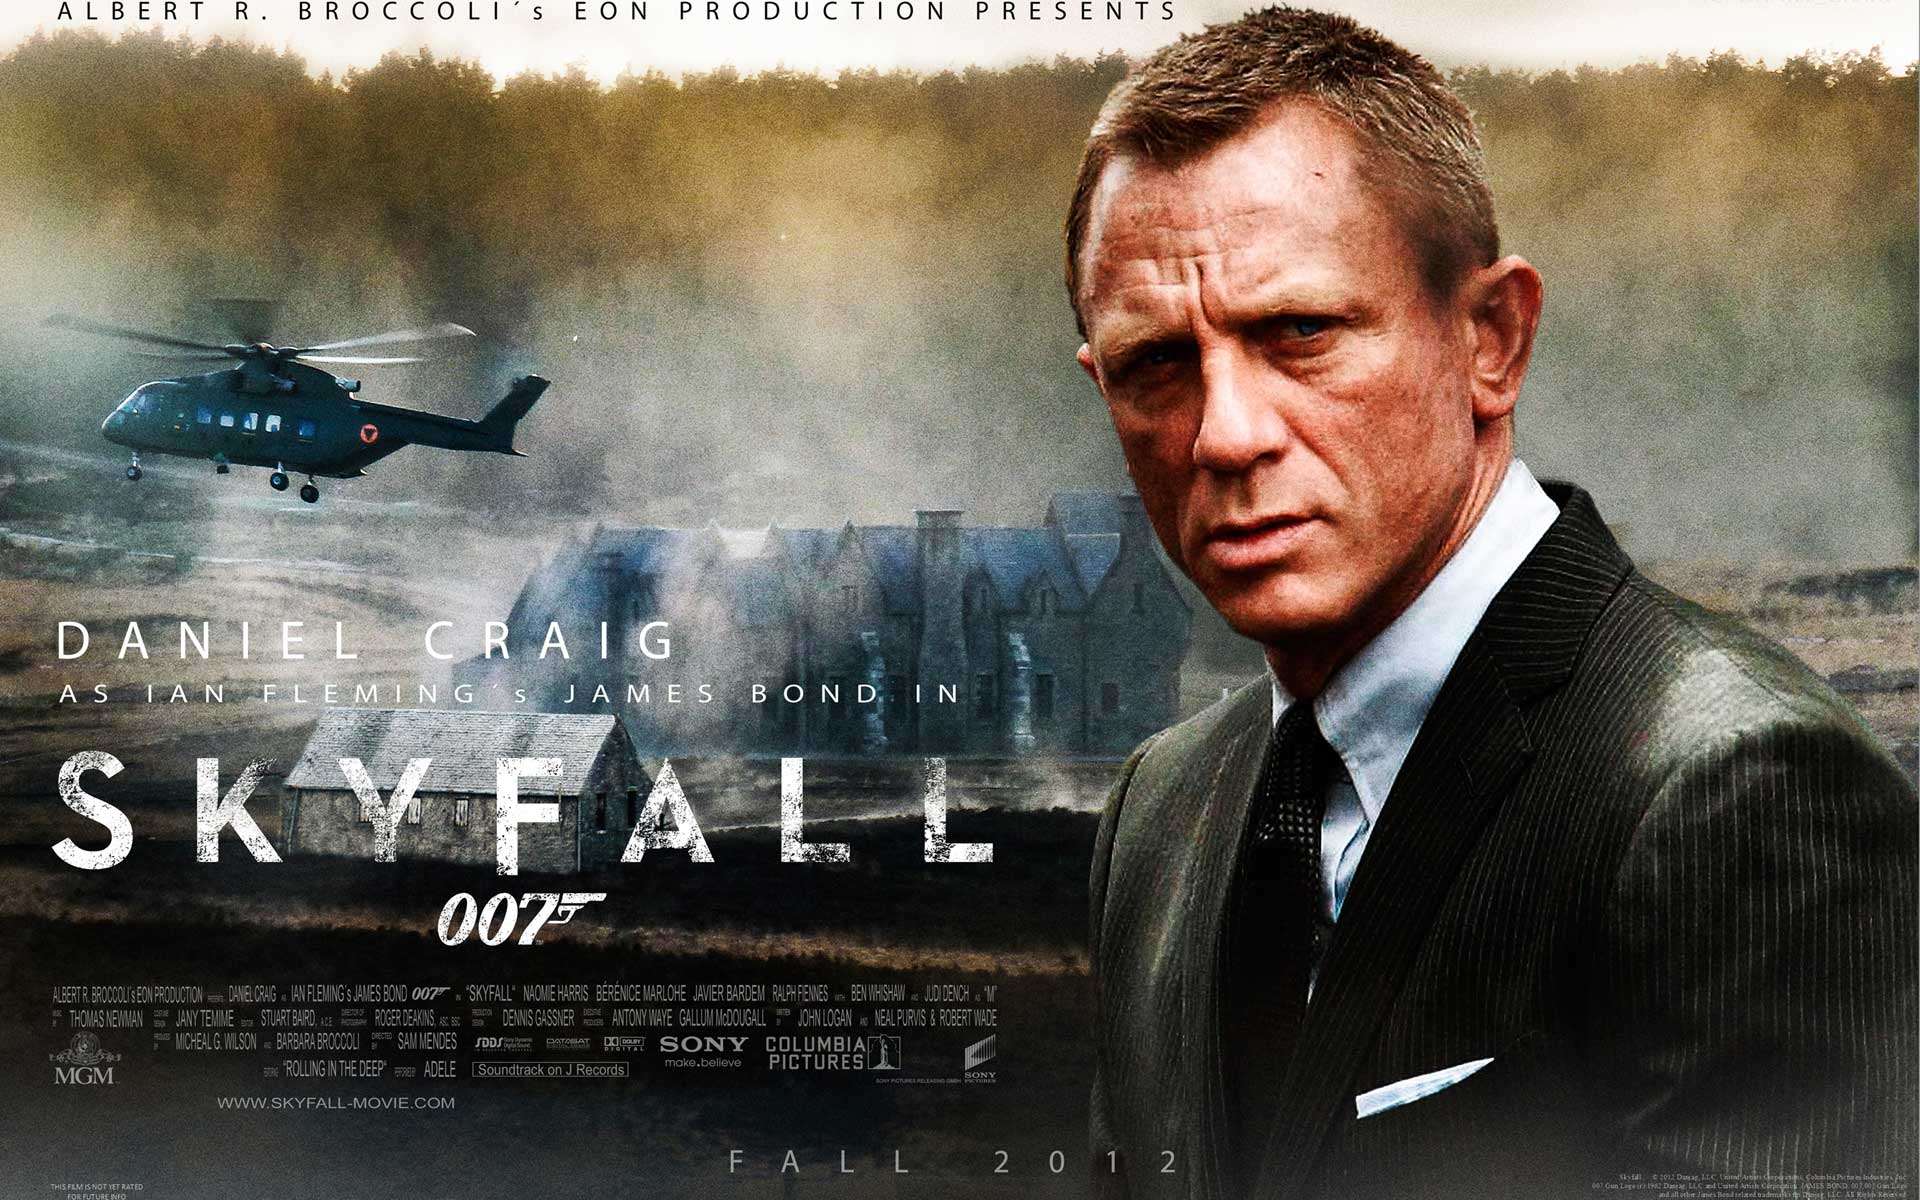 sky fall 007 images skyfall! hd wallpaper and background photos